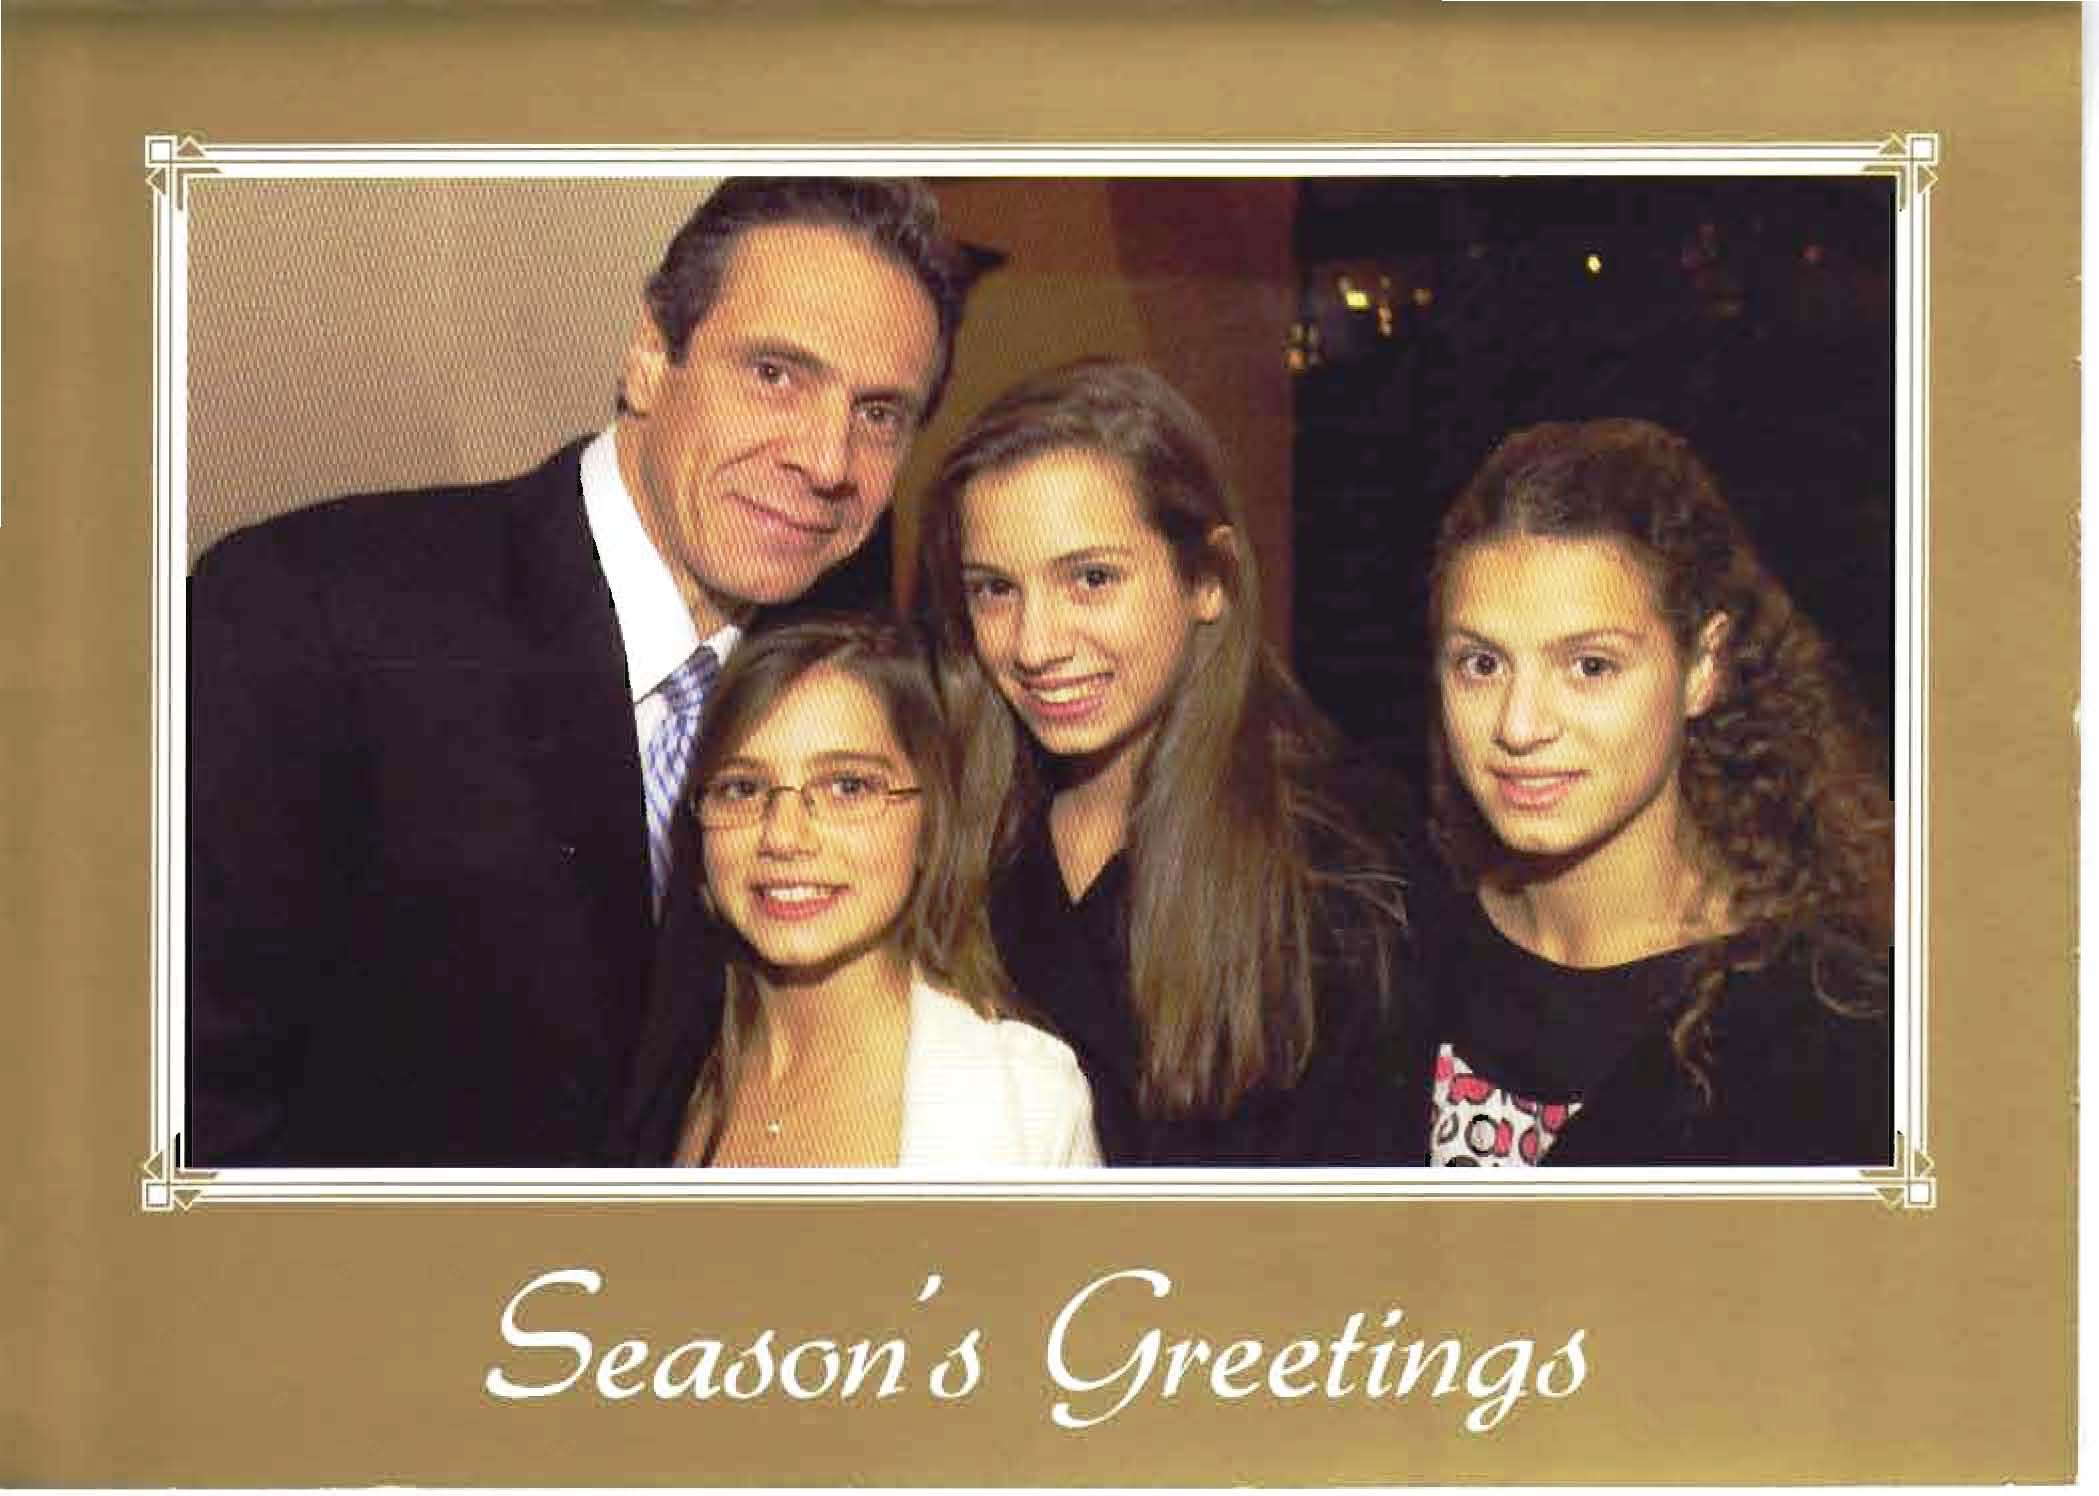 Holiday Greetings From The Cuomo Family